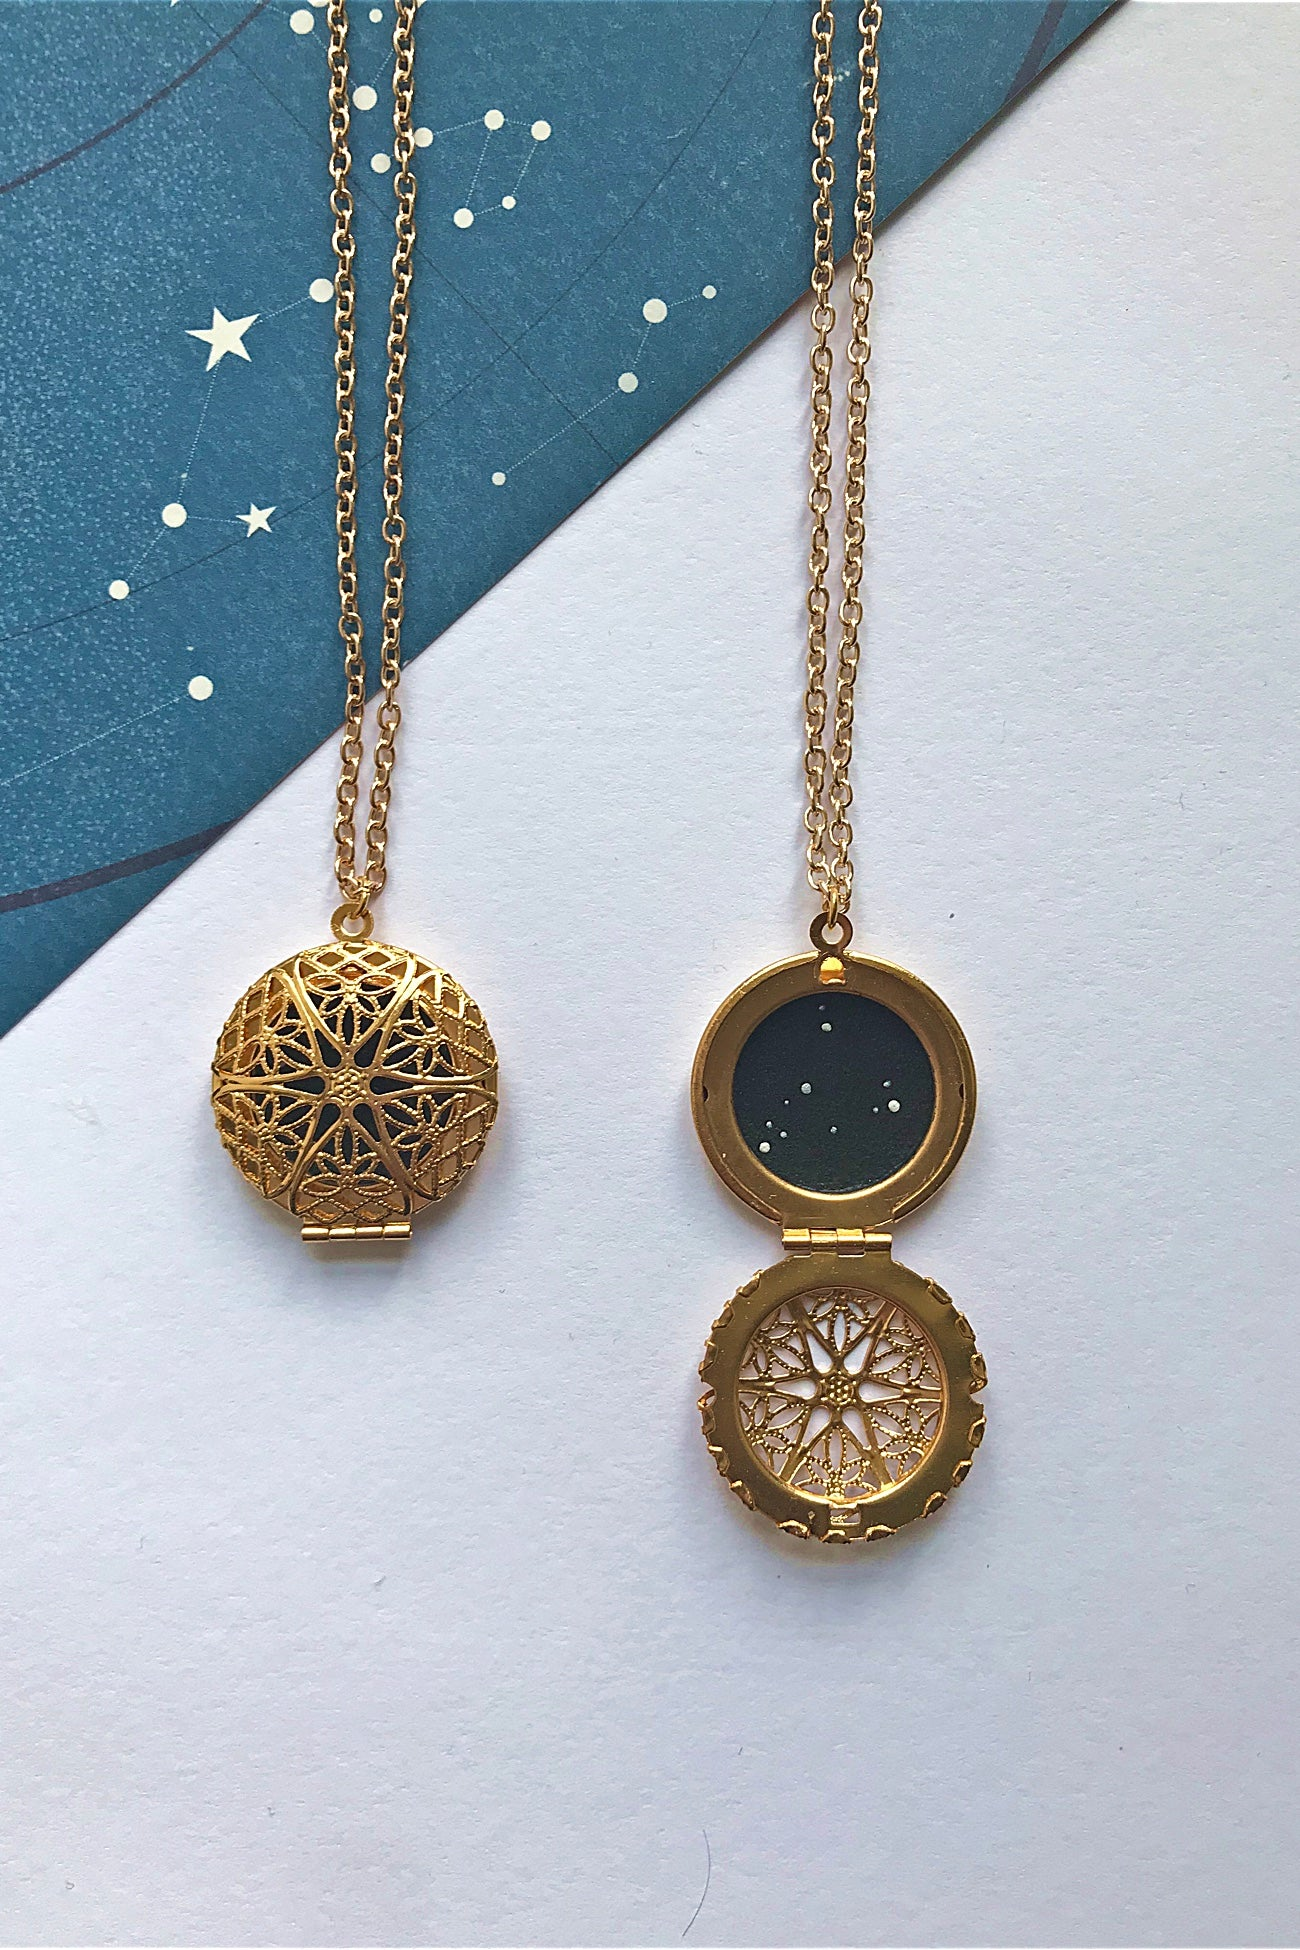 Capricorn constellation locket